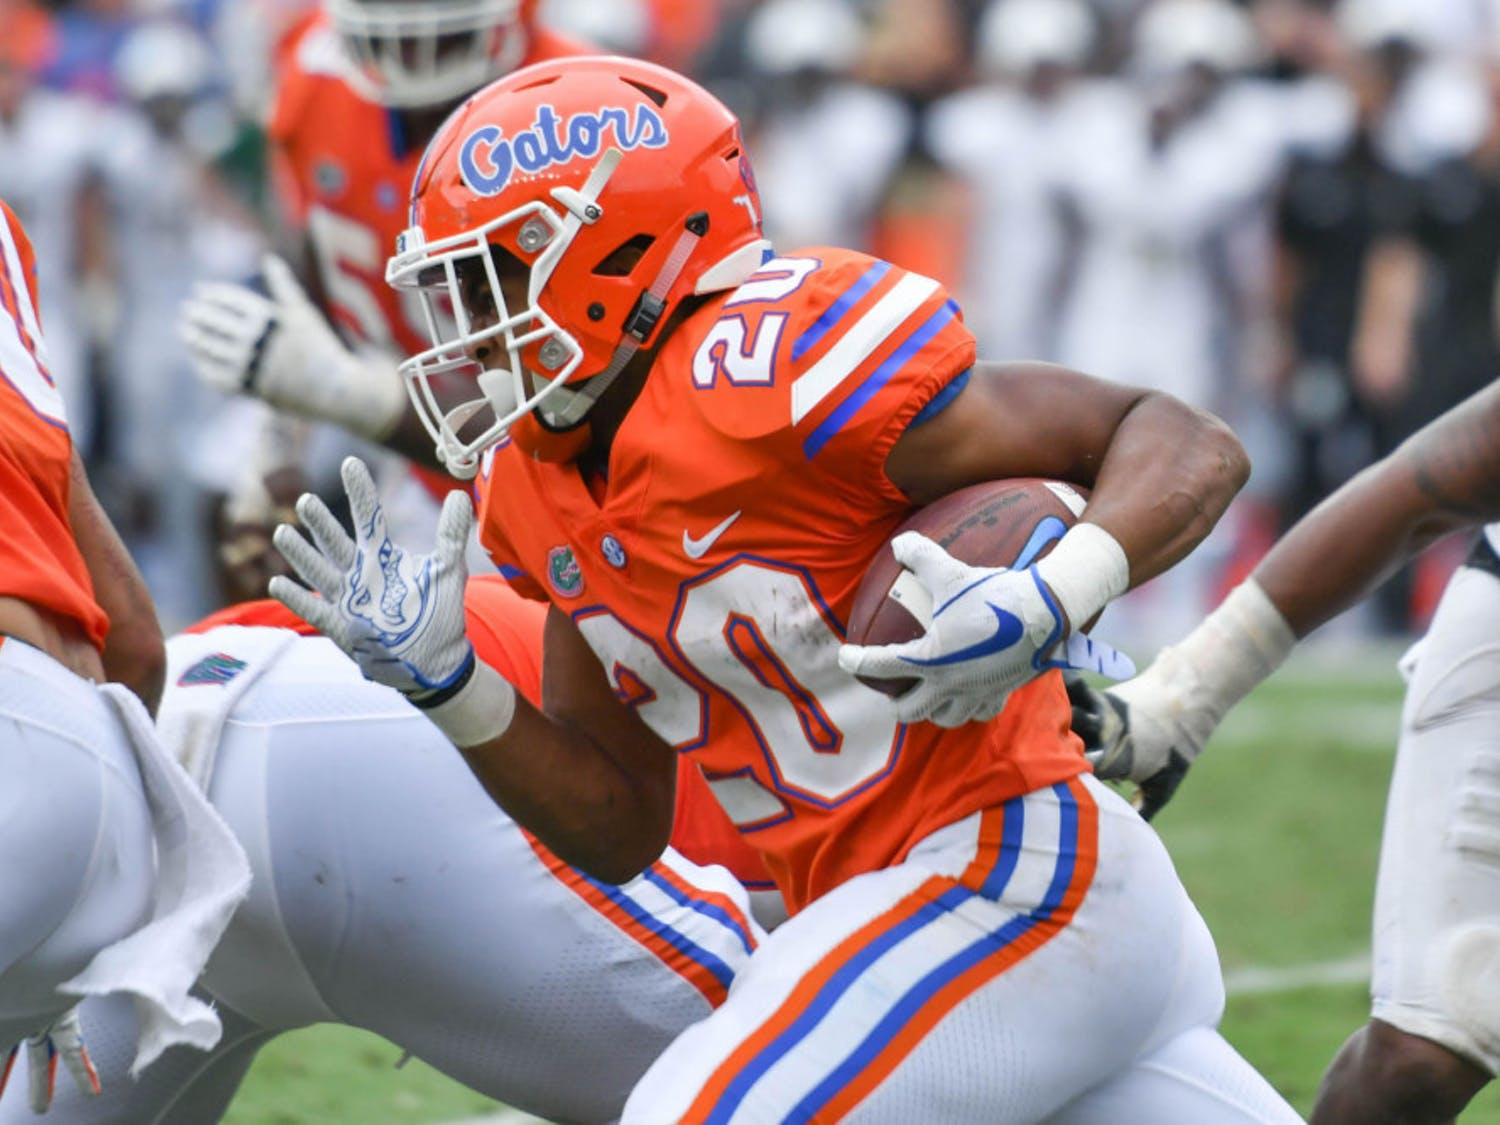 Malik Davis (pictured) and the Florida running backs are ready to take on the 2021 season by committee, running backs and special teams coach Greg Knox said Wednesday.